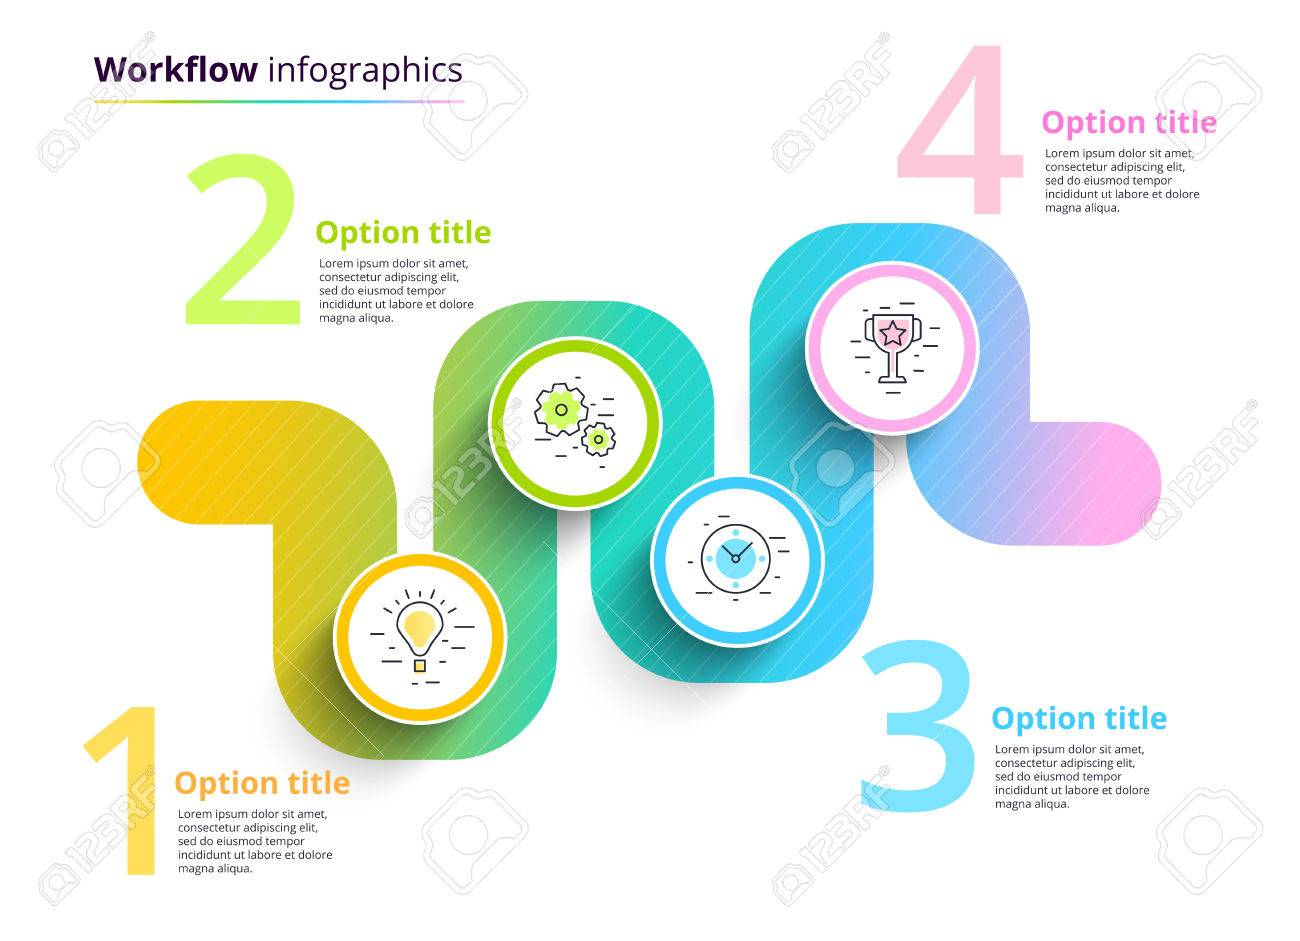 Business process chart infographics with 4 step circles circular business process chart infographics with 4 step circles circular corporate workflow graphic elements company nvjuhfo Choice Image